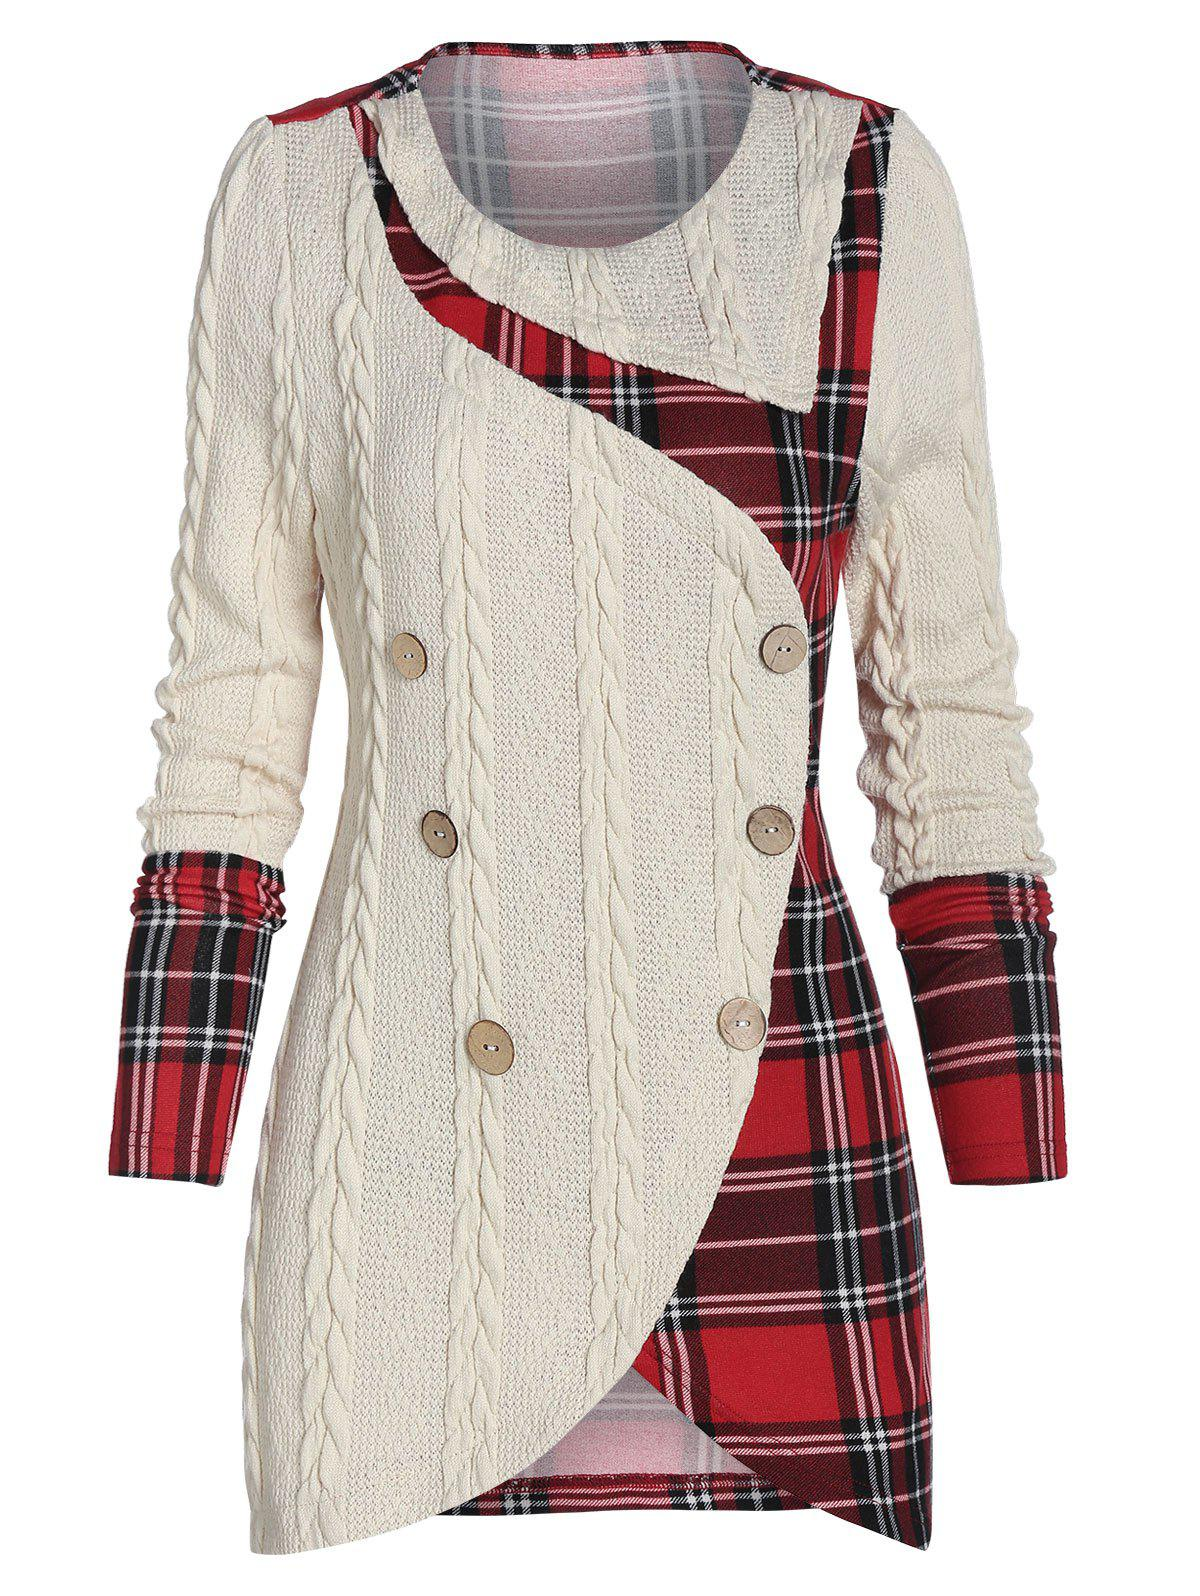 Plaid Panel Mock Button High Low Sweater - multicolor 2XL